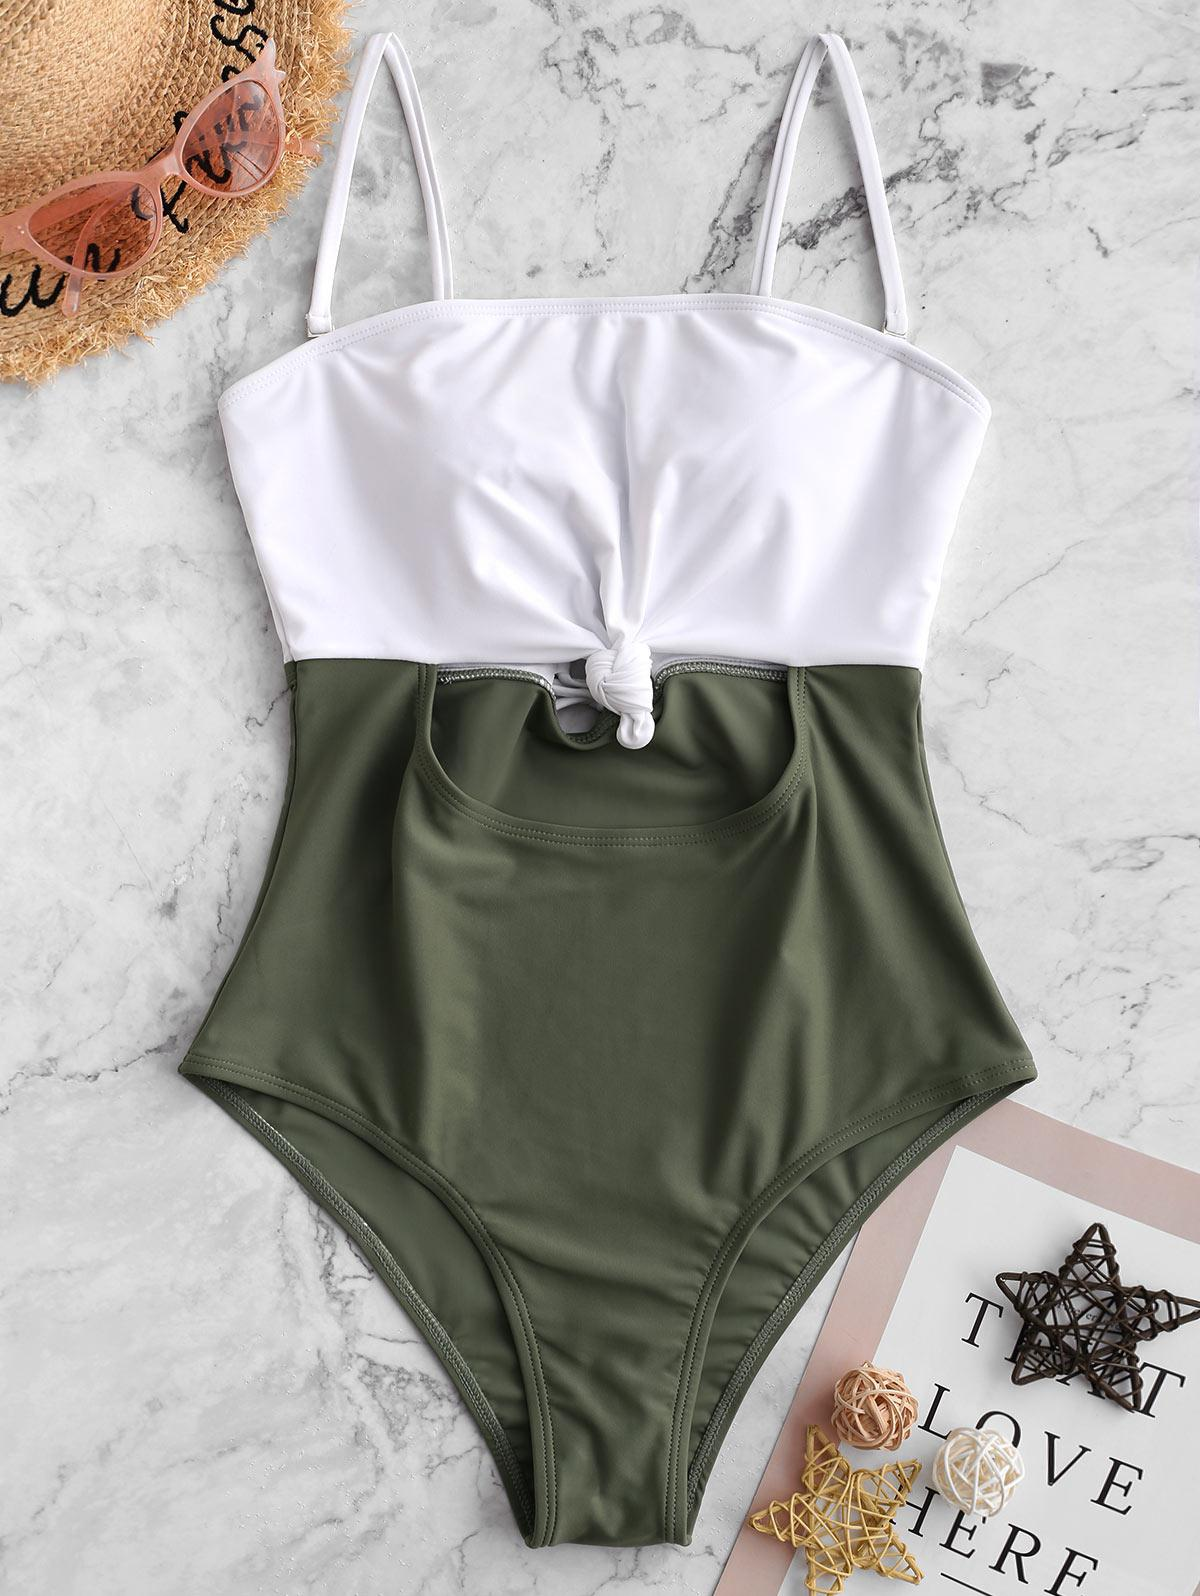 ZAFUL Color Block Knotted Lace Up One-piece Swimsuit, Camouflage green